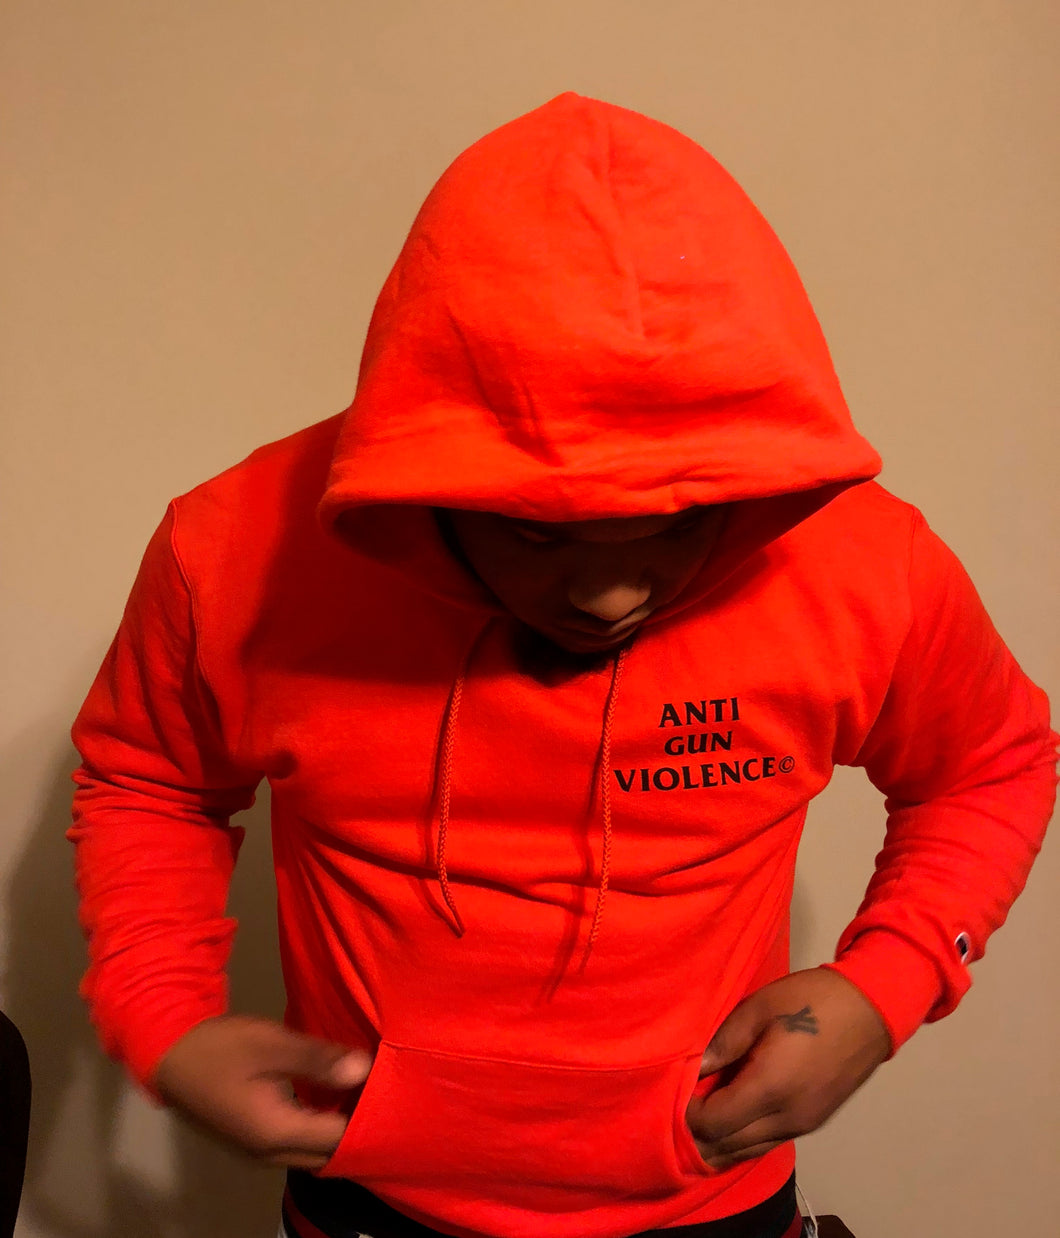 EL CAMINO EXCLUSIVE ANTI GUN VIOLENCE HOODIE 'ORANGE' COLORWAY